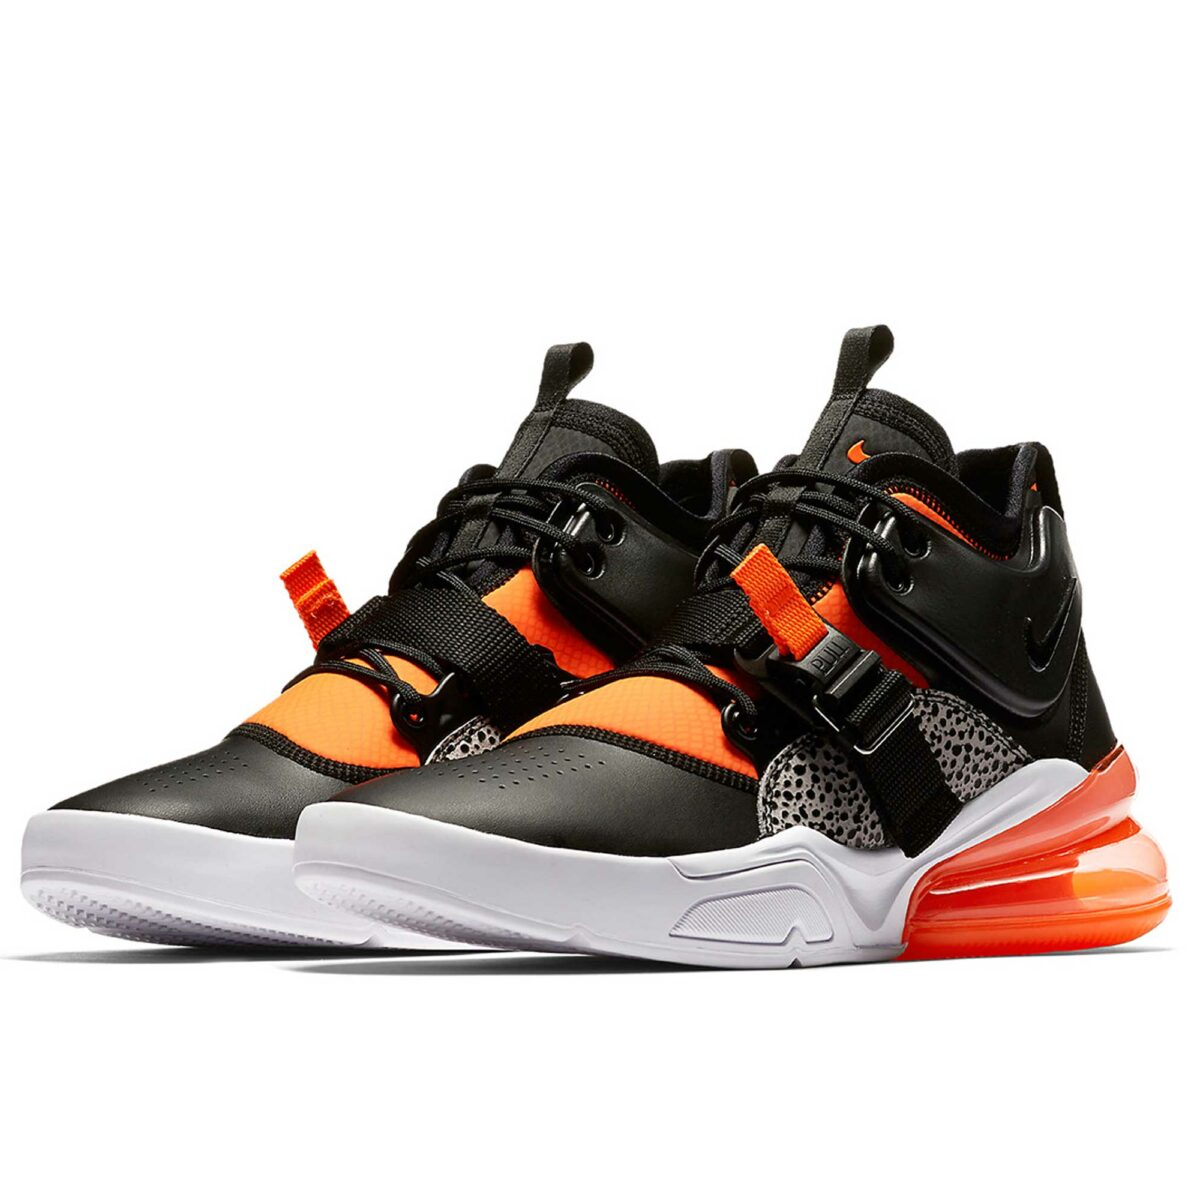 nike air force 270 black orange AH6772_004 купить